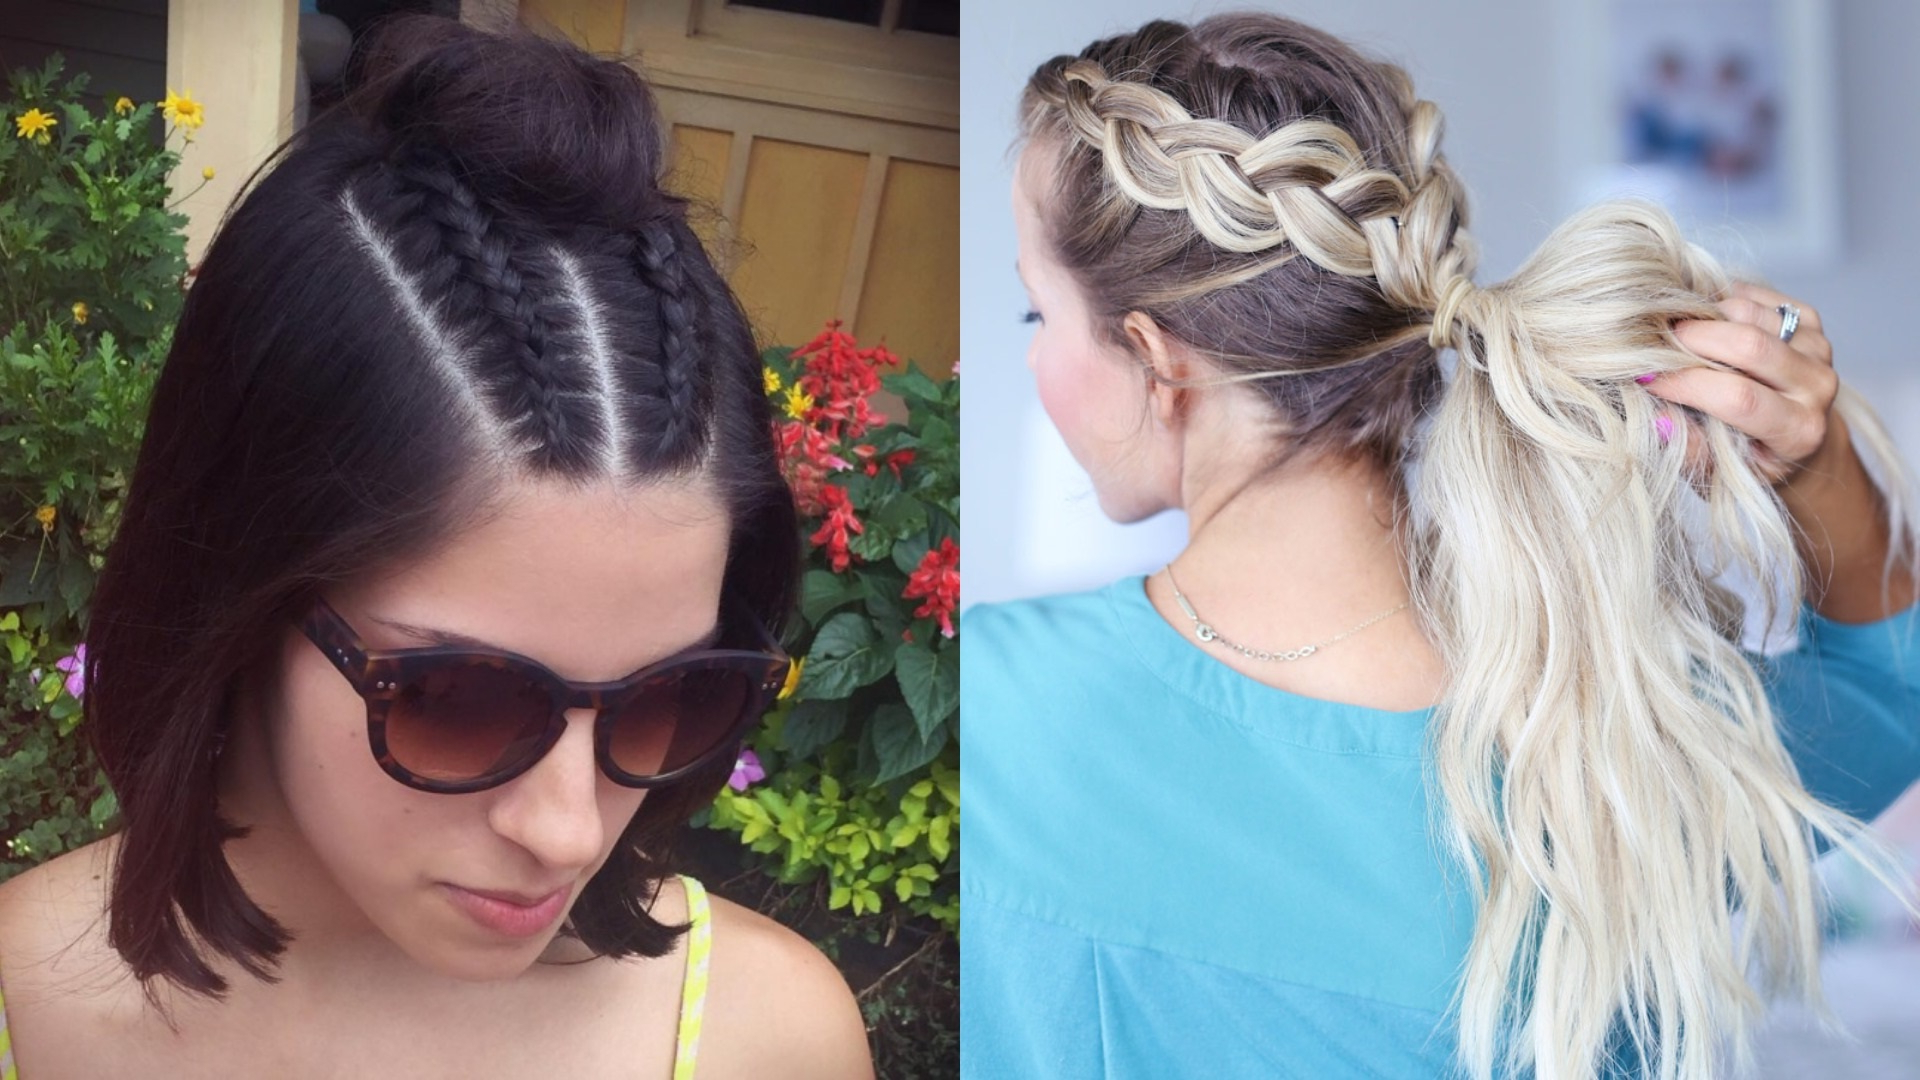 21 Glamorous Dutch Braid Hairstyles To Try Now – Haircuts Pertaining To Current Loosely Tied Braided Hairstyles With A Ribbon (View 4 of 20)